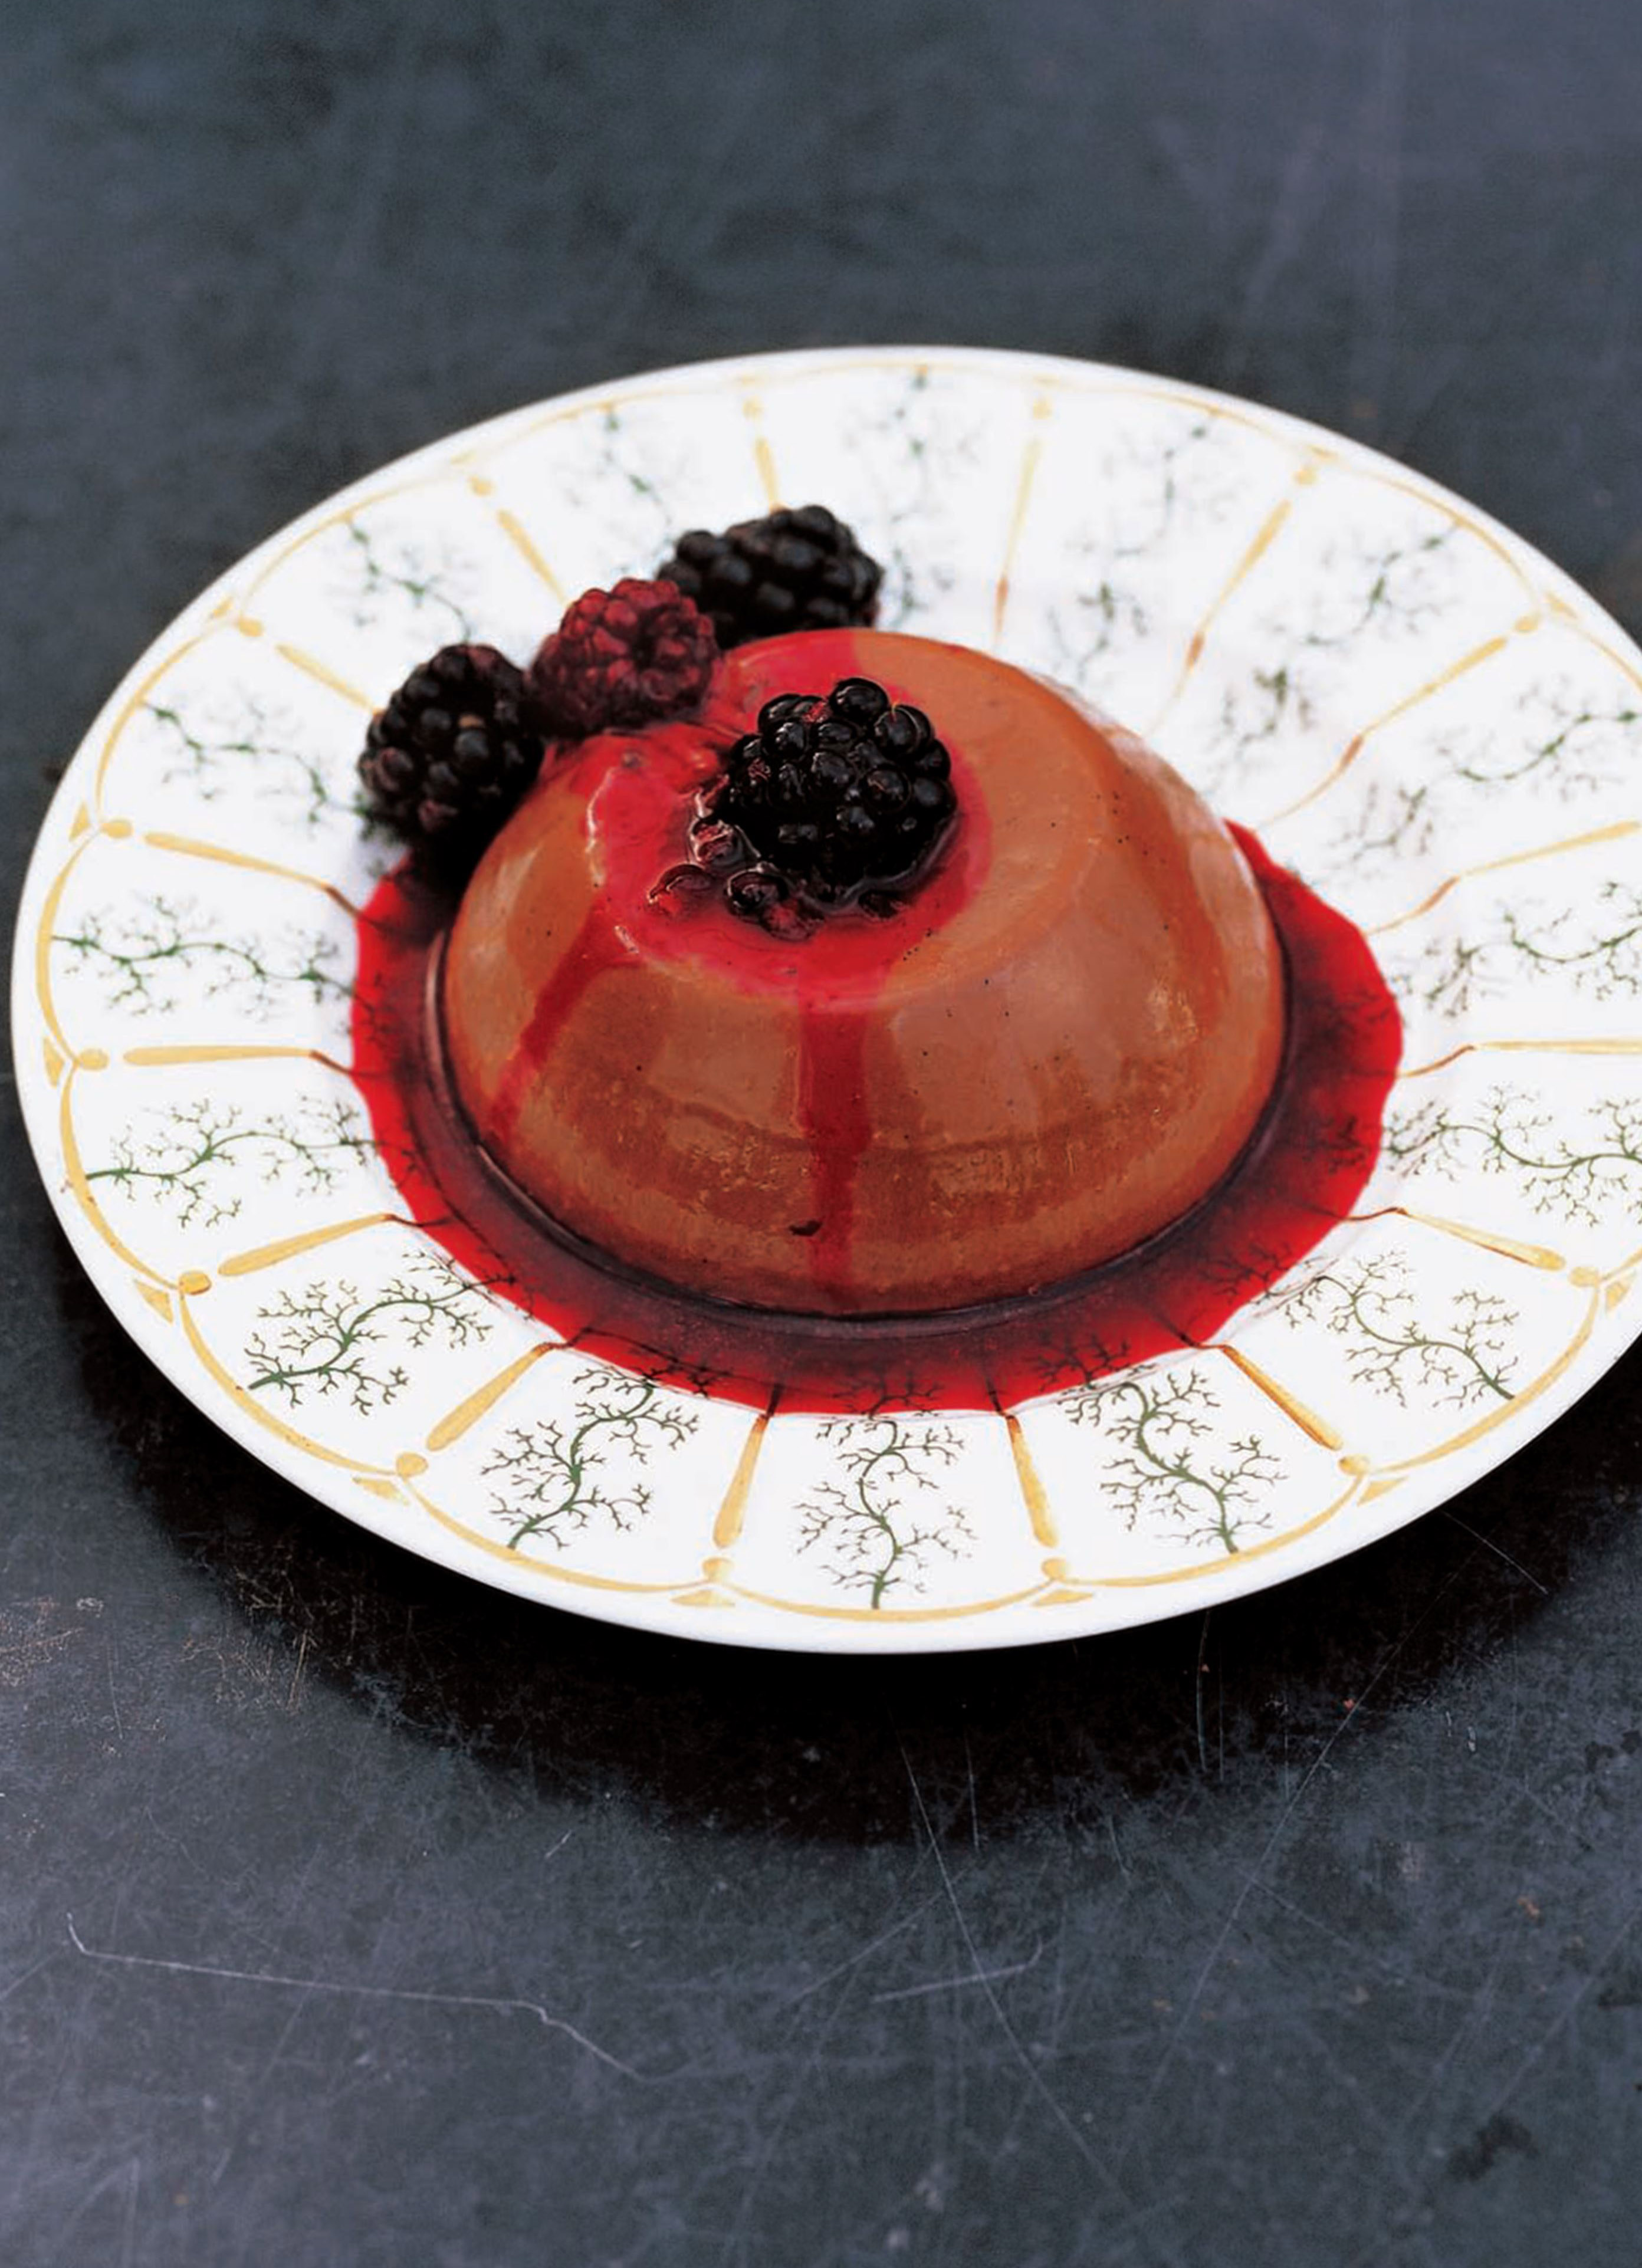 Chocolate panna cotta with warm berries and honey